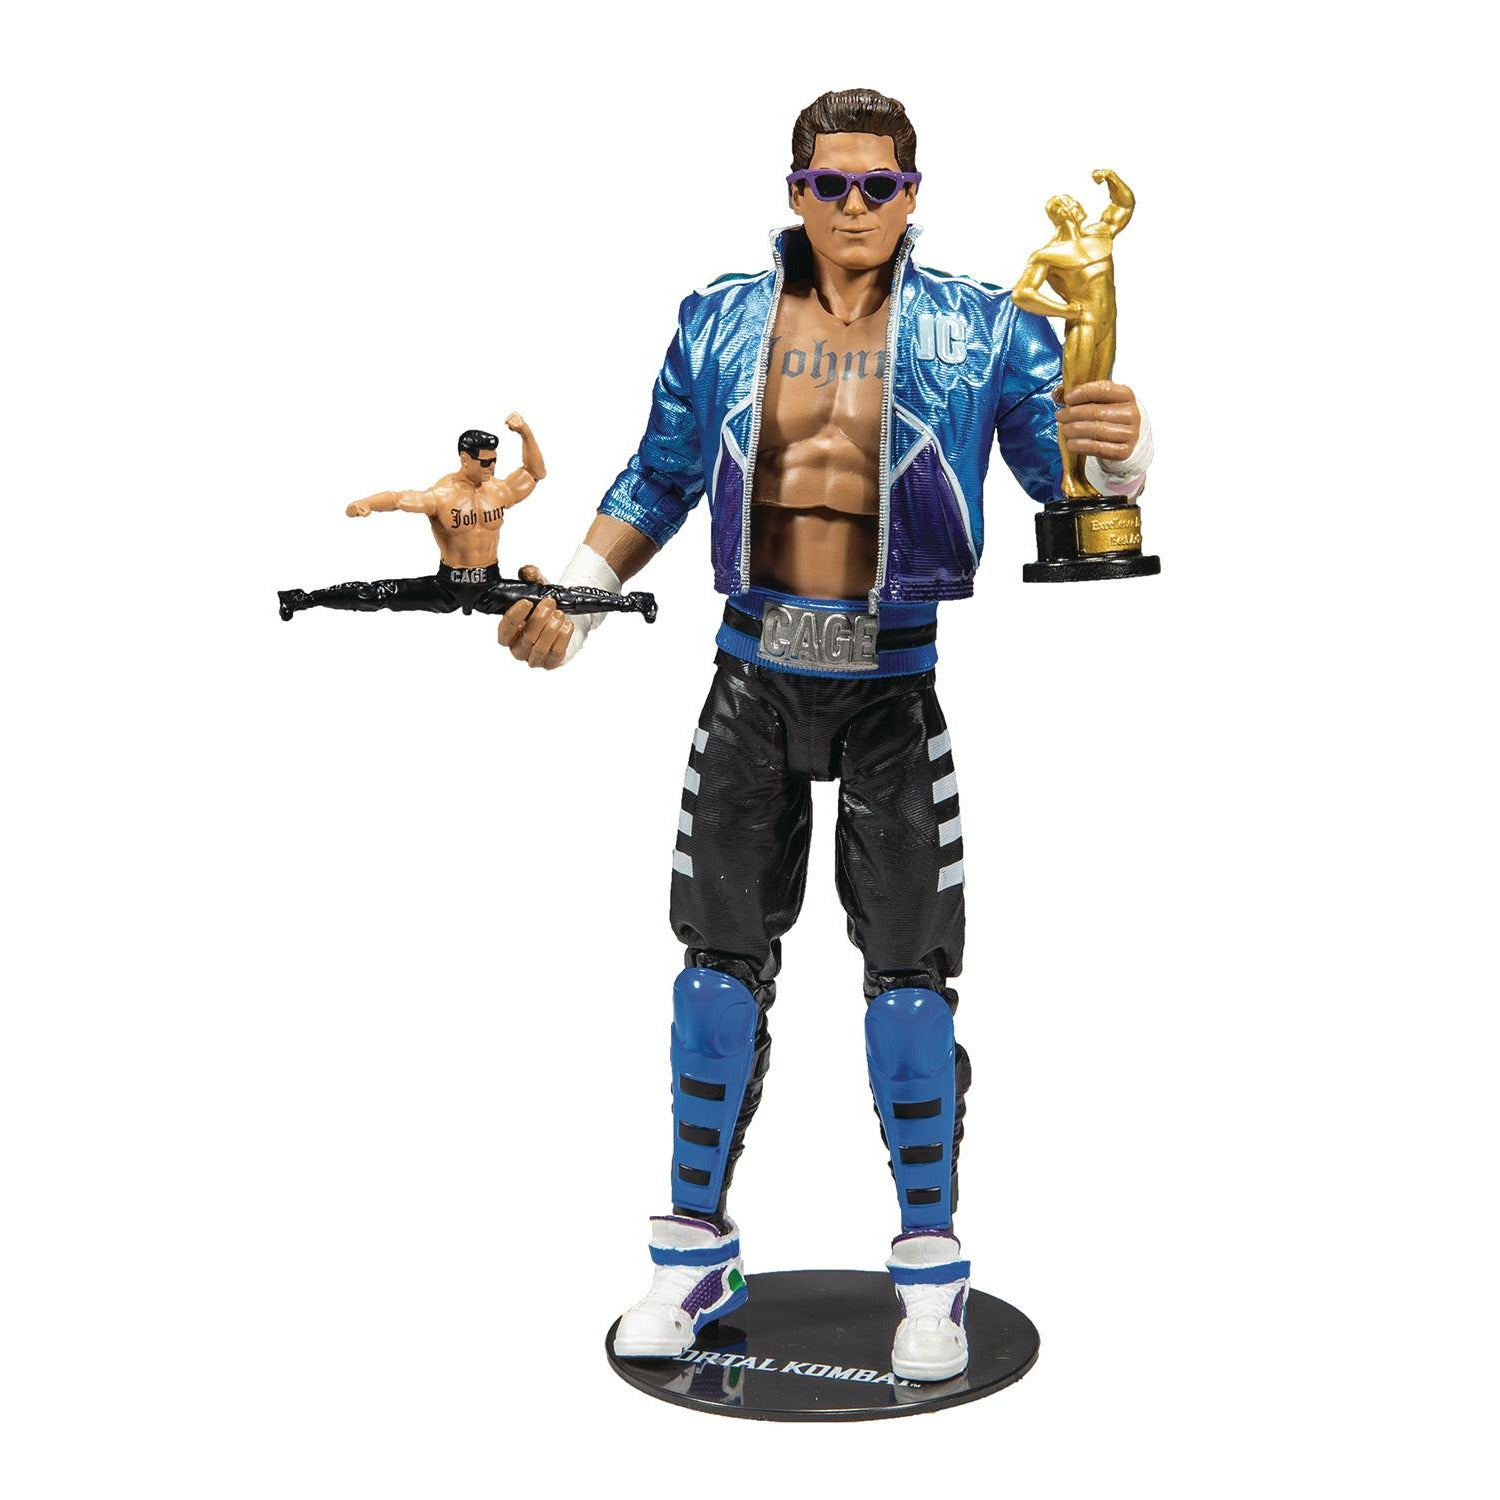 Mortal Kombat Wv2 Johnny Cage 7in Scale Action Figure CS